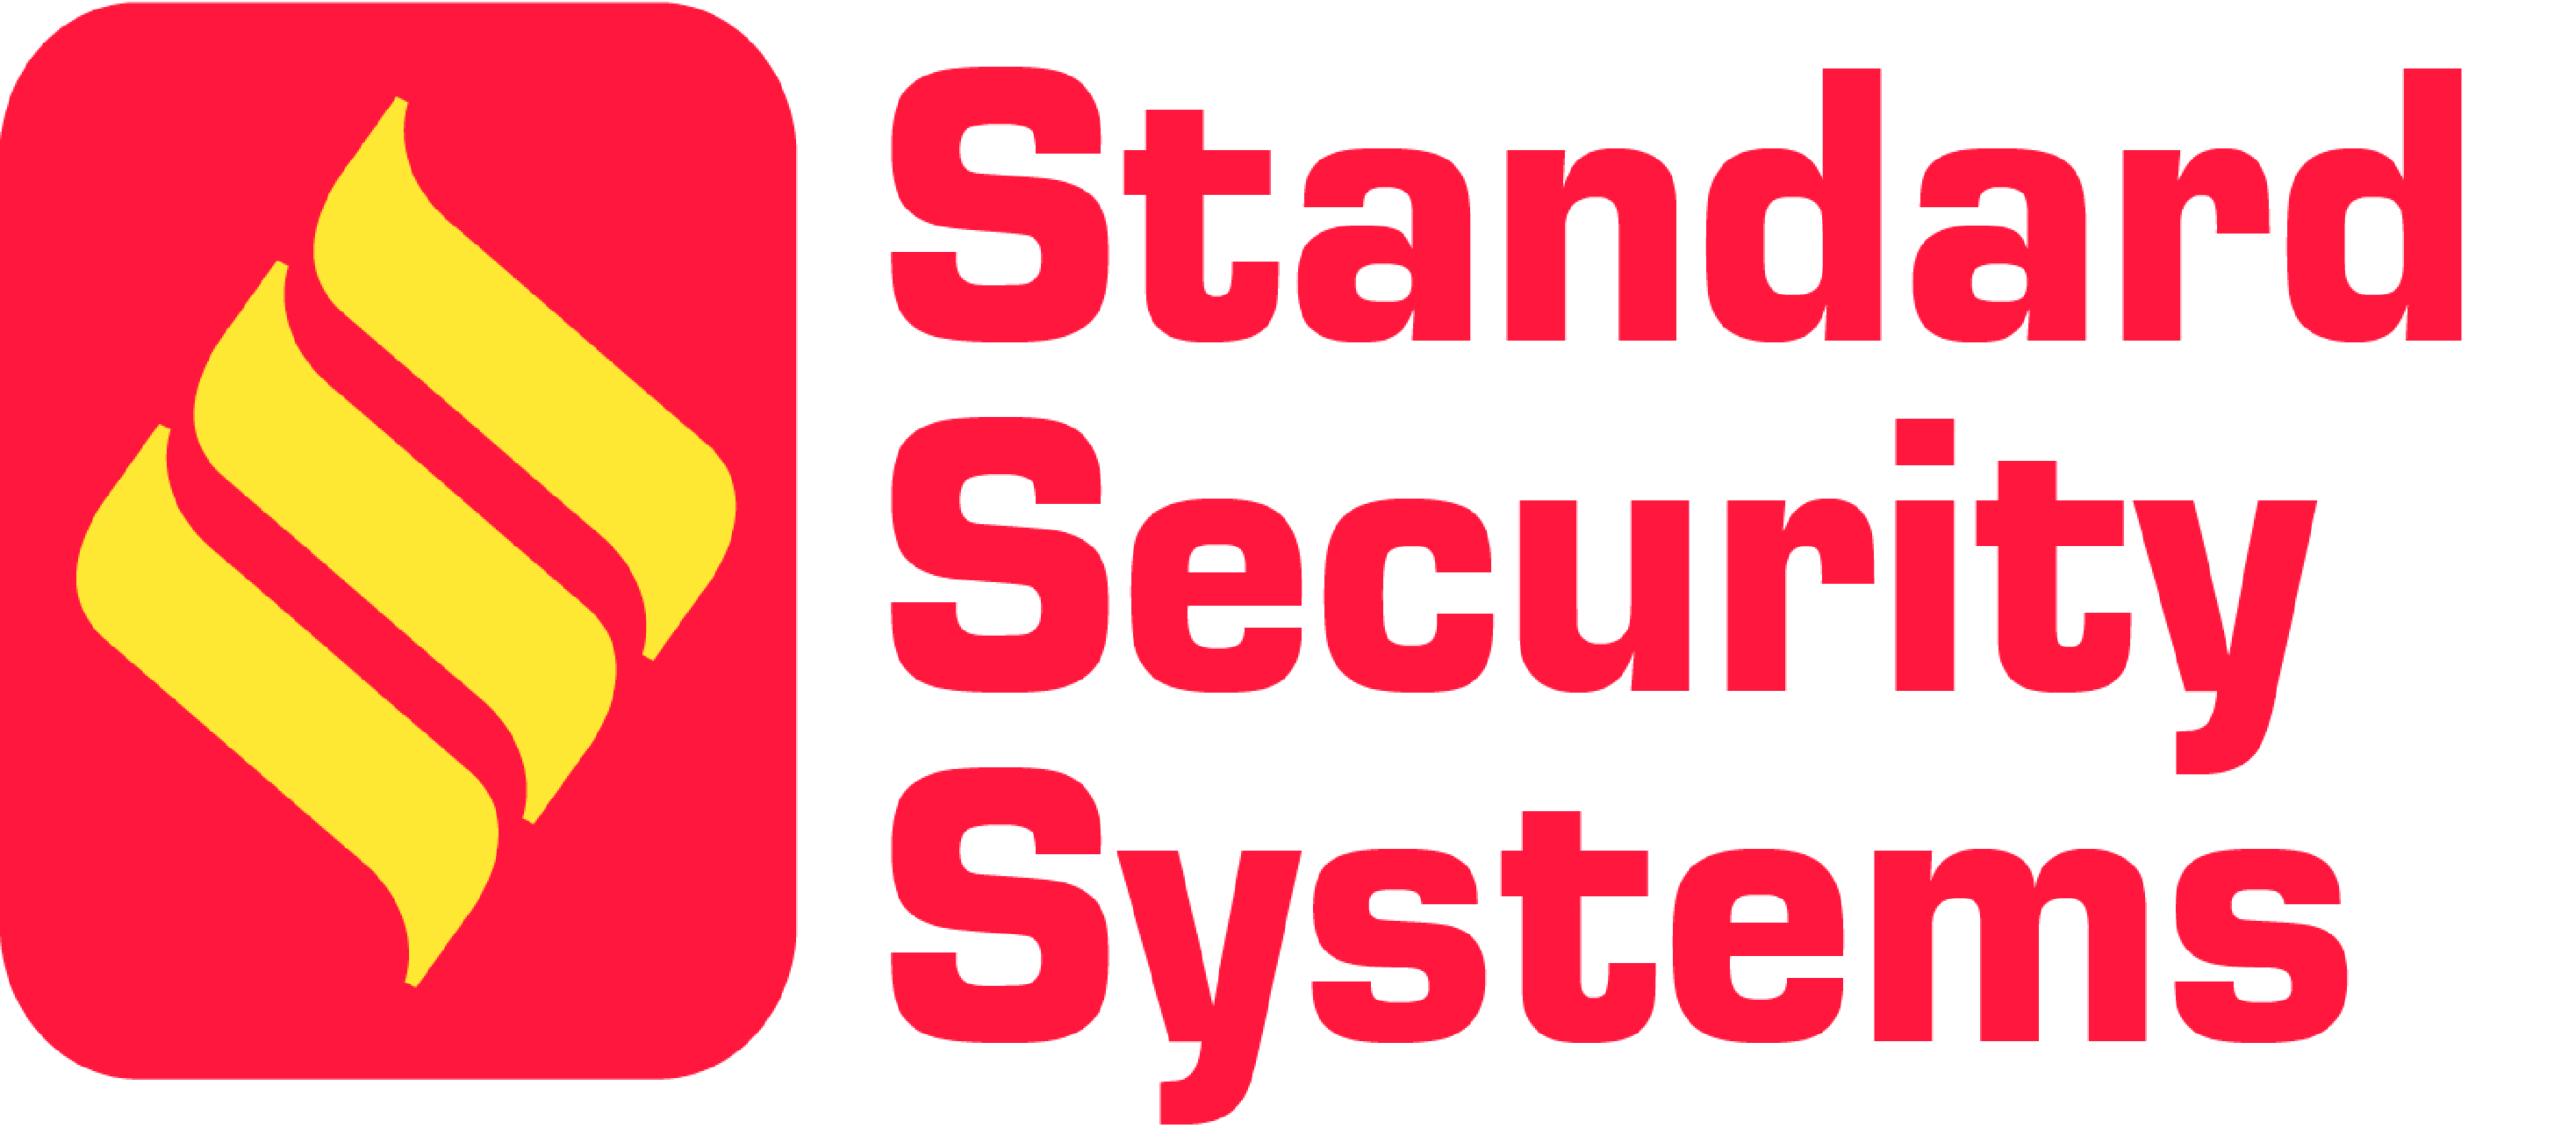 4. Standard Security Systems (Statewide Presenting)